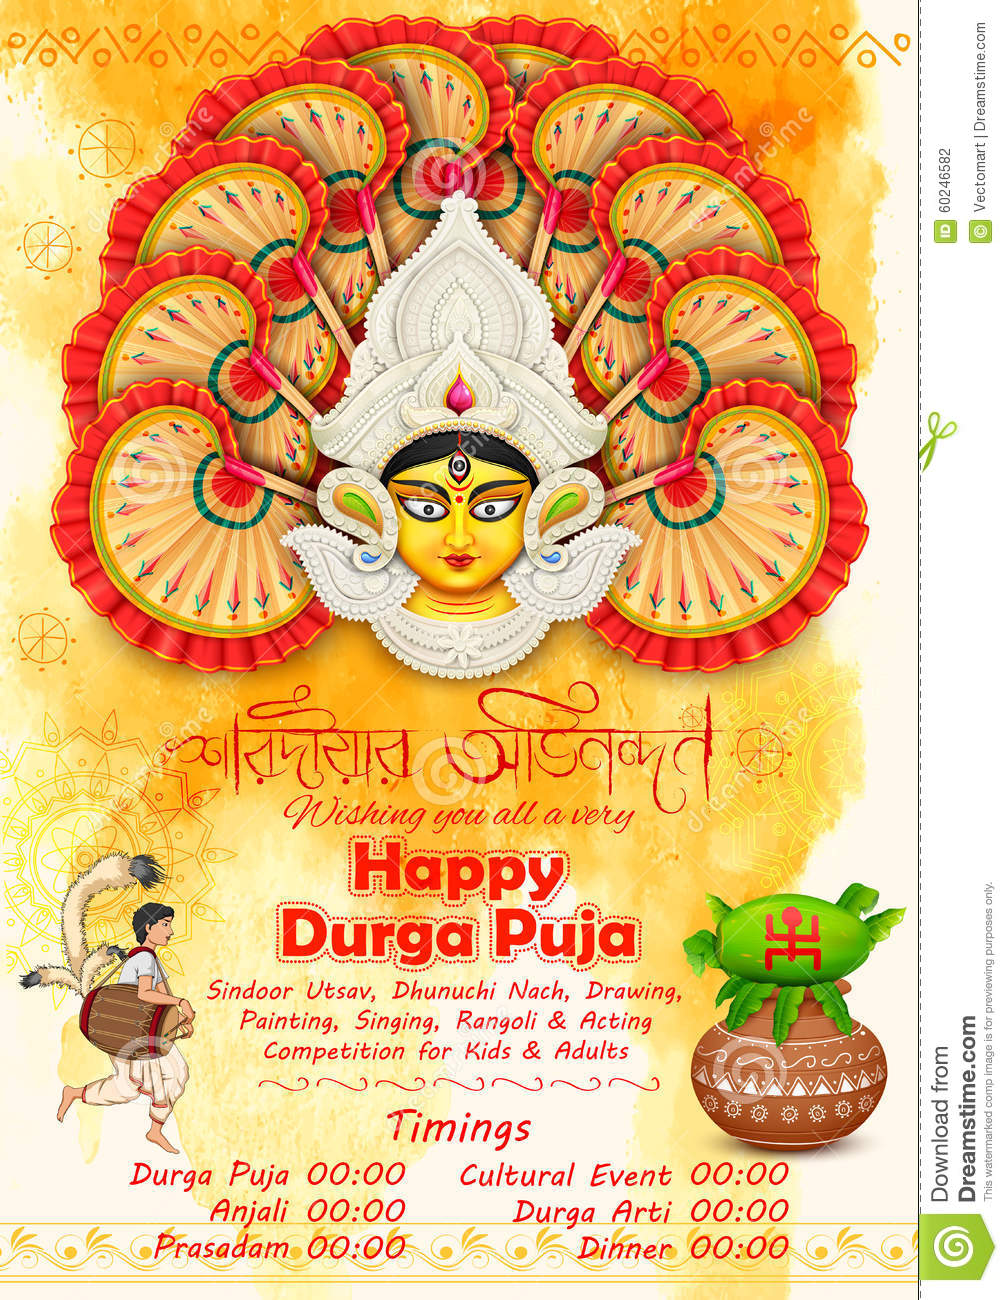 Happy durga puja background stock vector illustration of happy durga puja background kristyandbryce Images